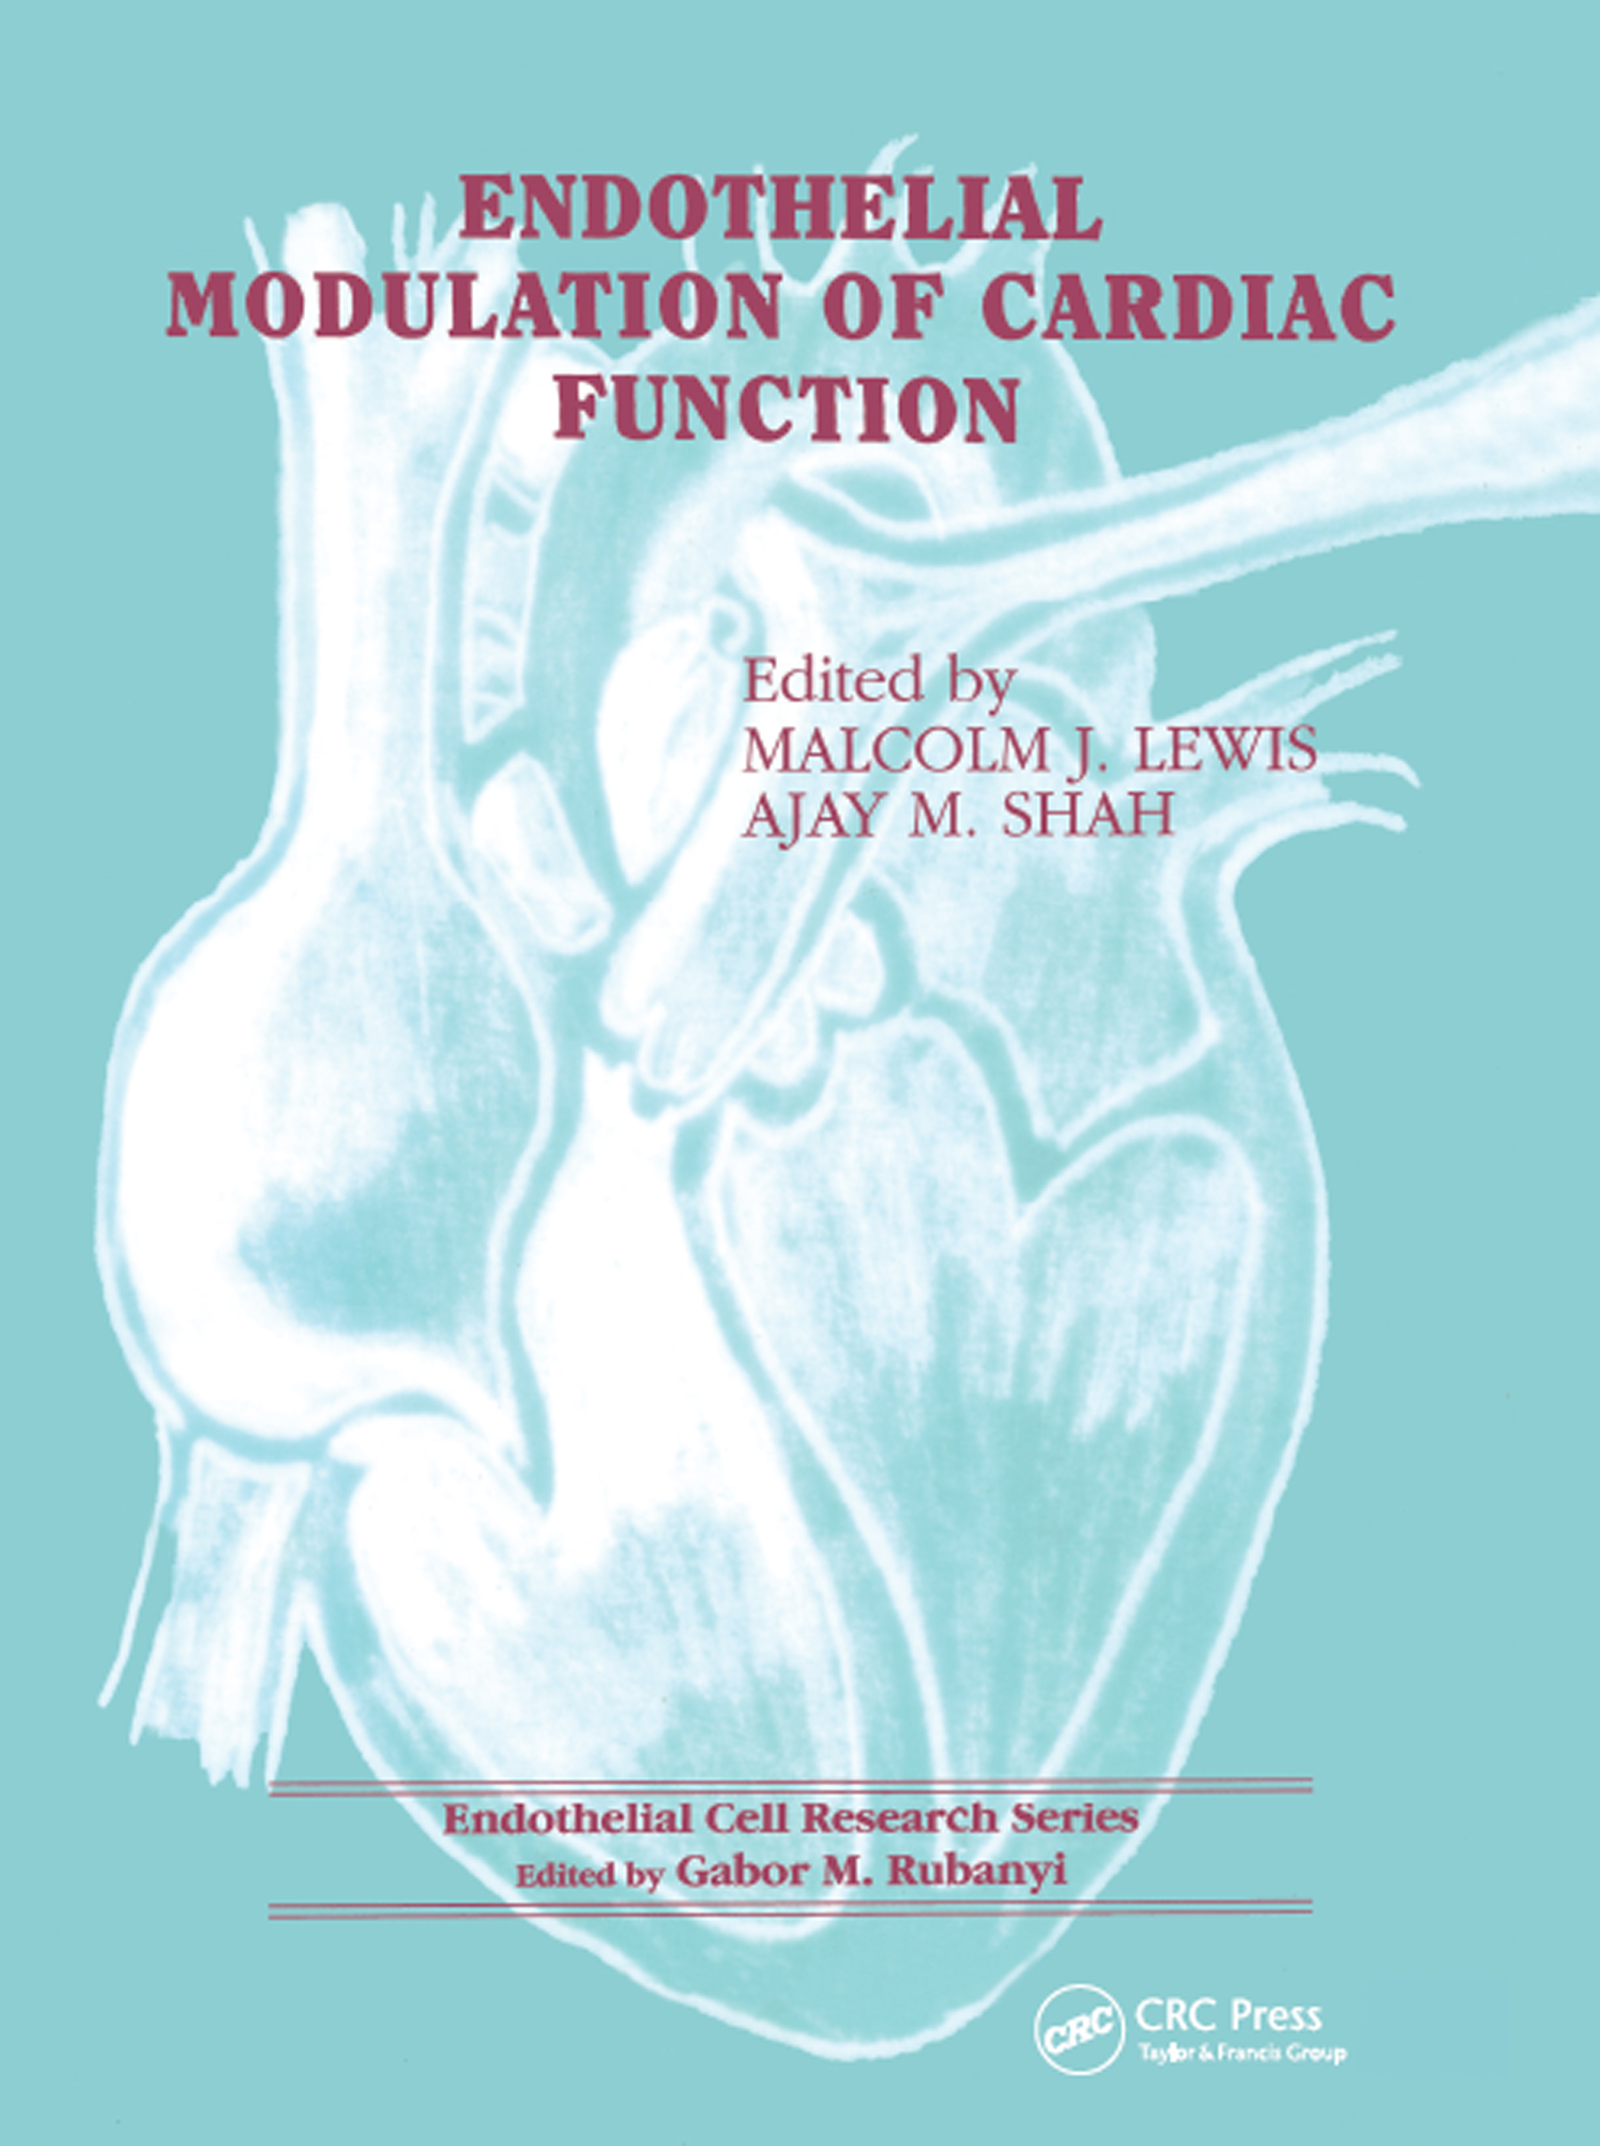 Endothelial Modulation of Cardiac Function